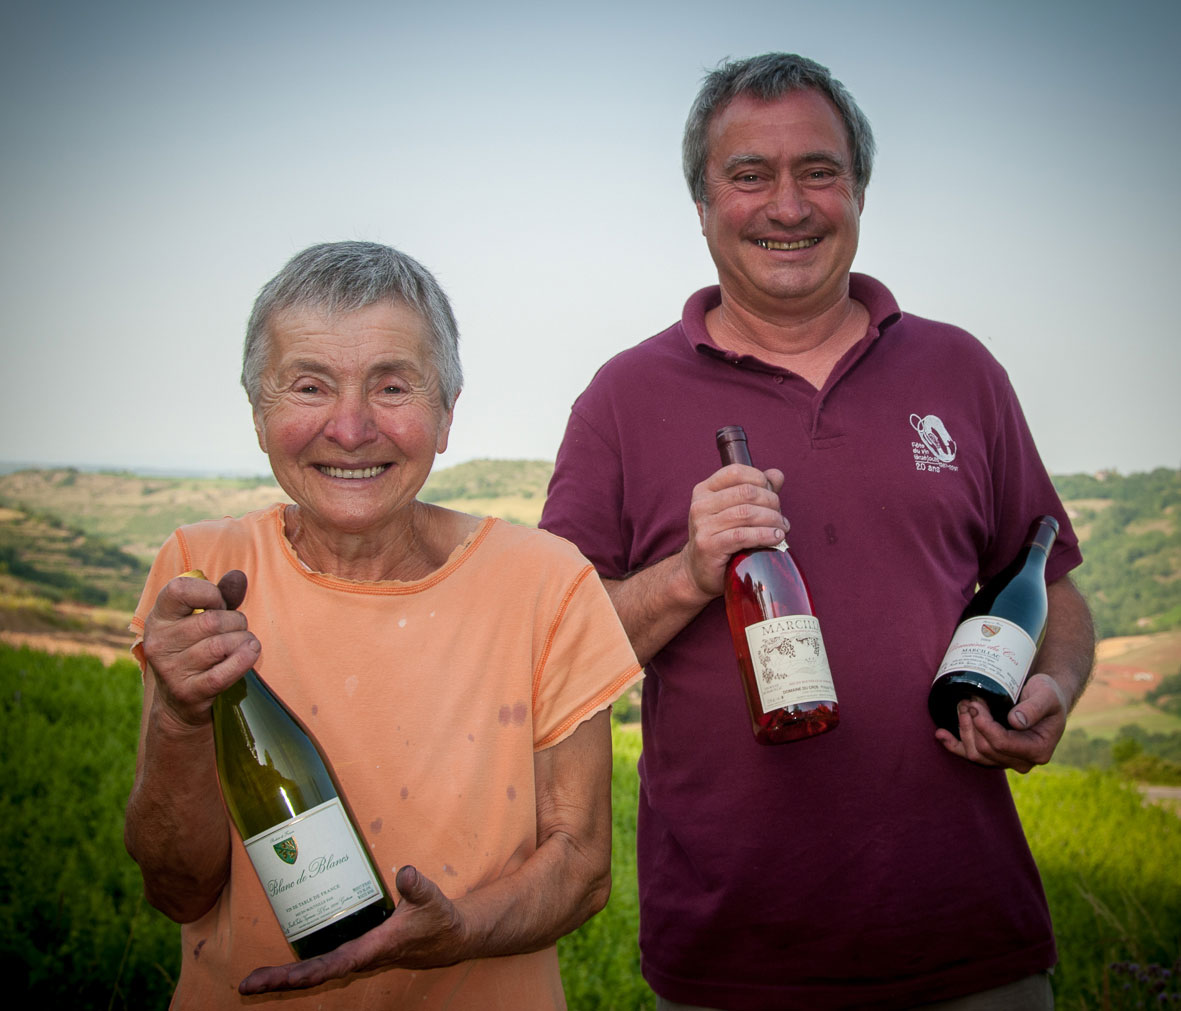 The Marcillac winemakers Philippe Teullier and his mother proudly showing us a bottle of red, rosé and white they produce on their domain.